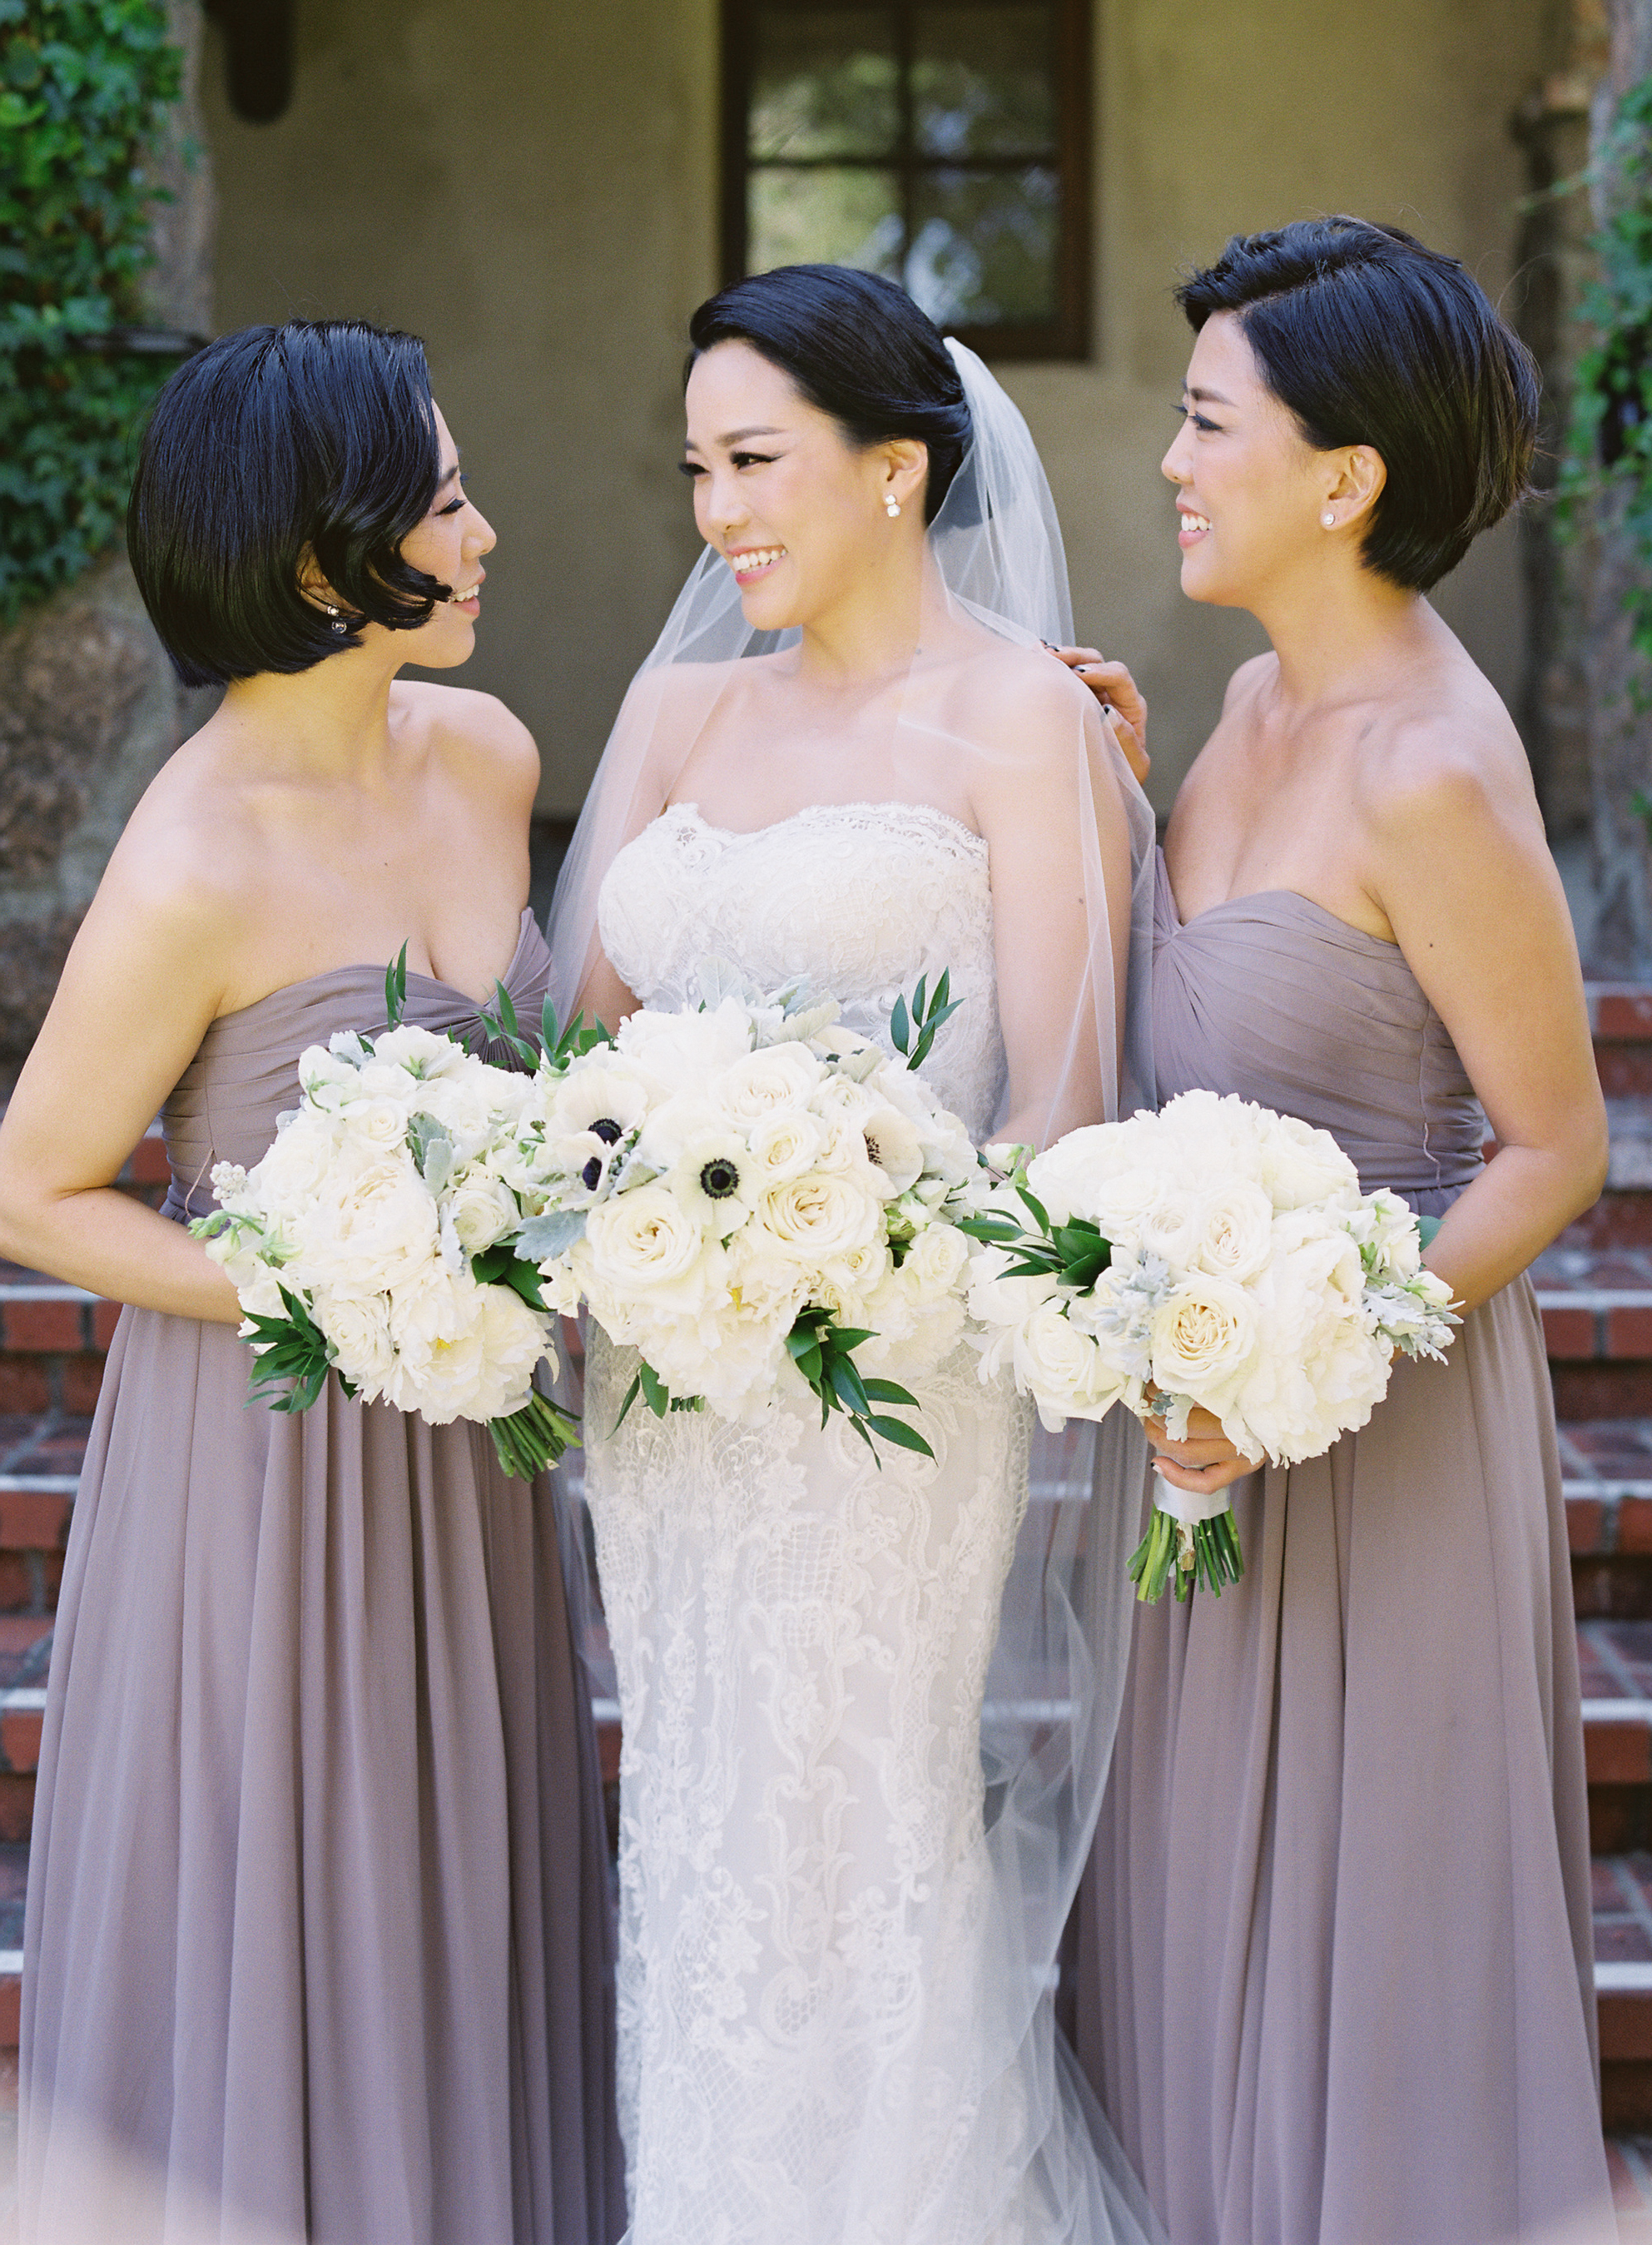 Meghan Mehan Photography - Sonoma Golf Club Wedding - California Film Wedding Photographer - 034.jpg